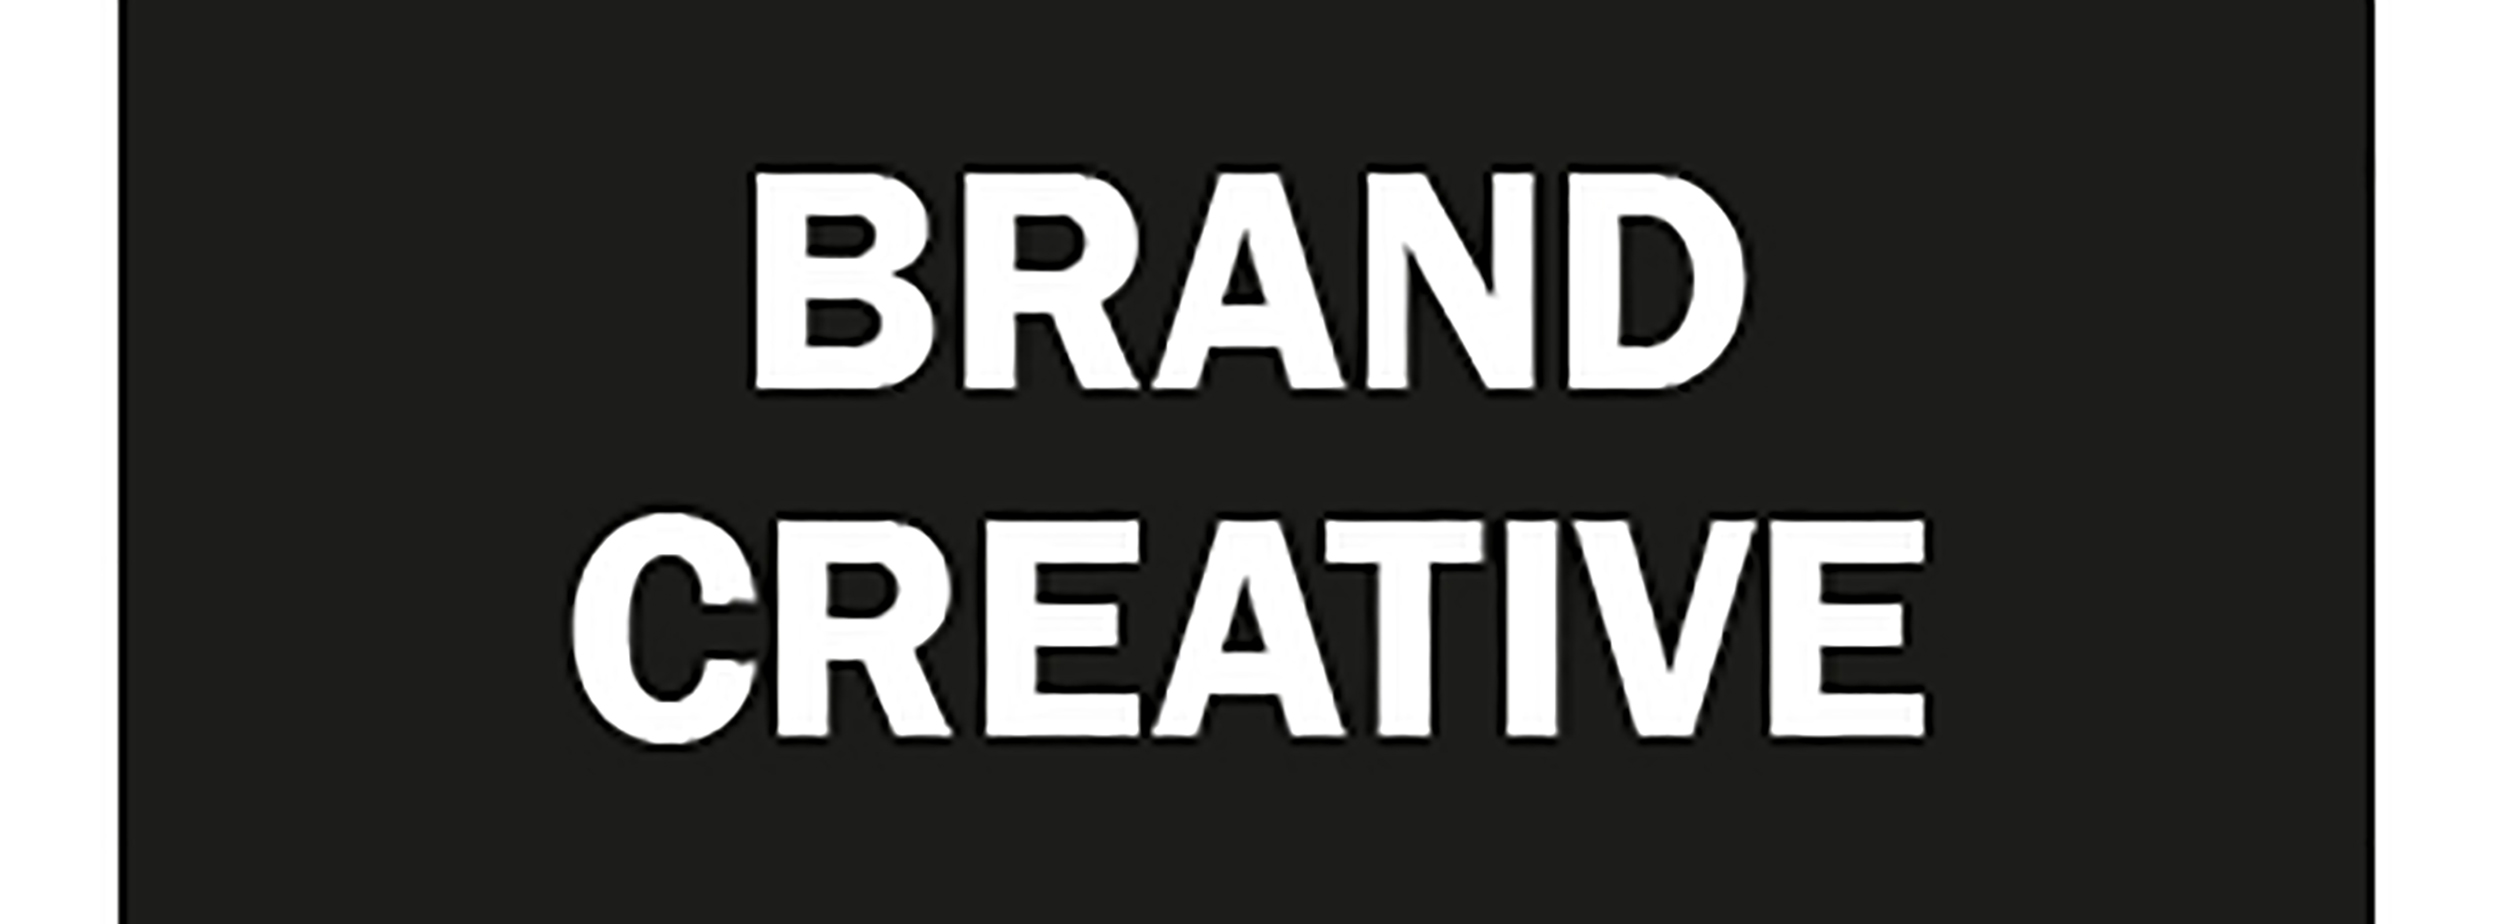 Brand Creative BUTTON.jpg